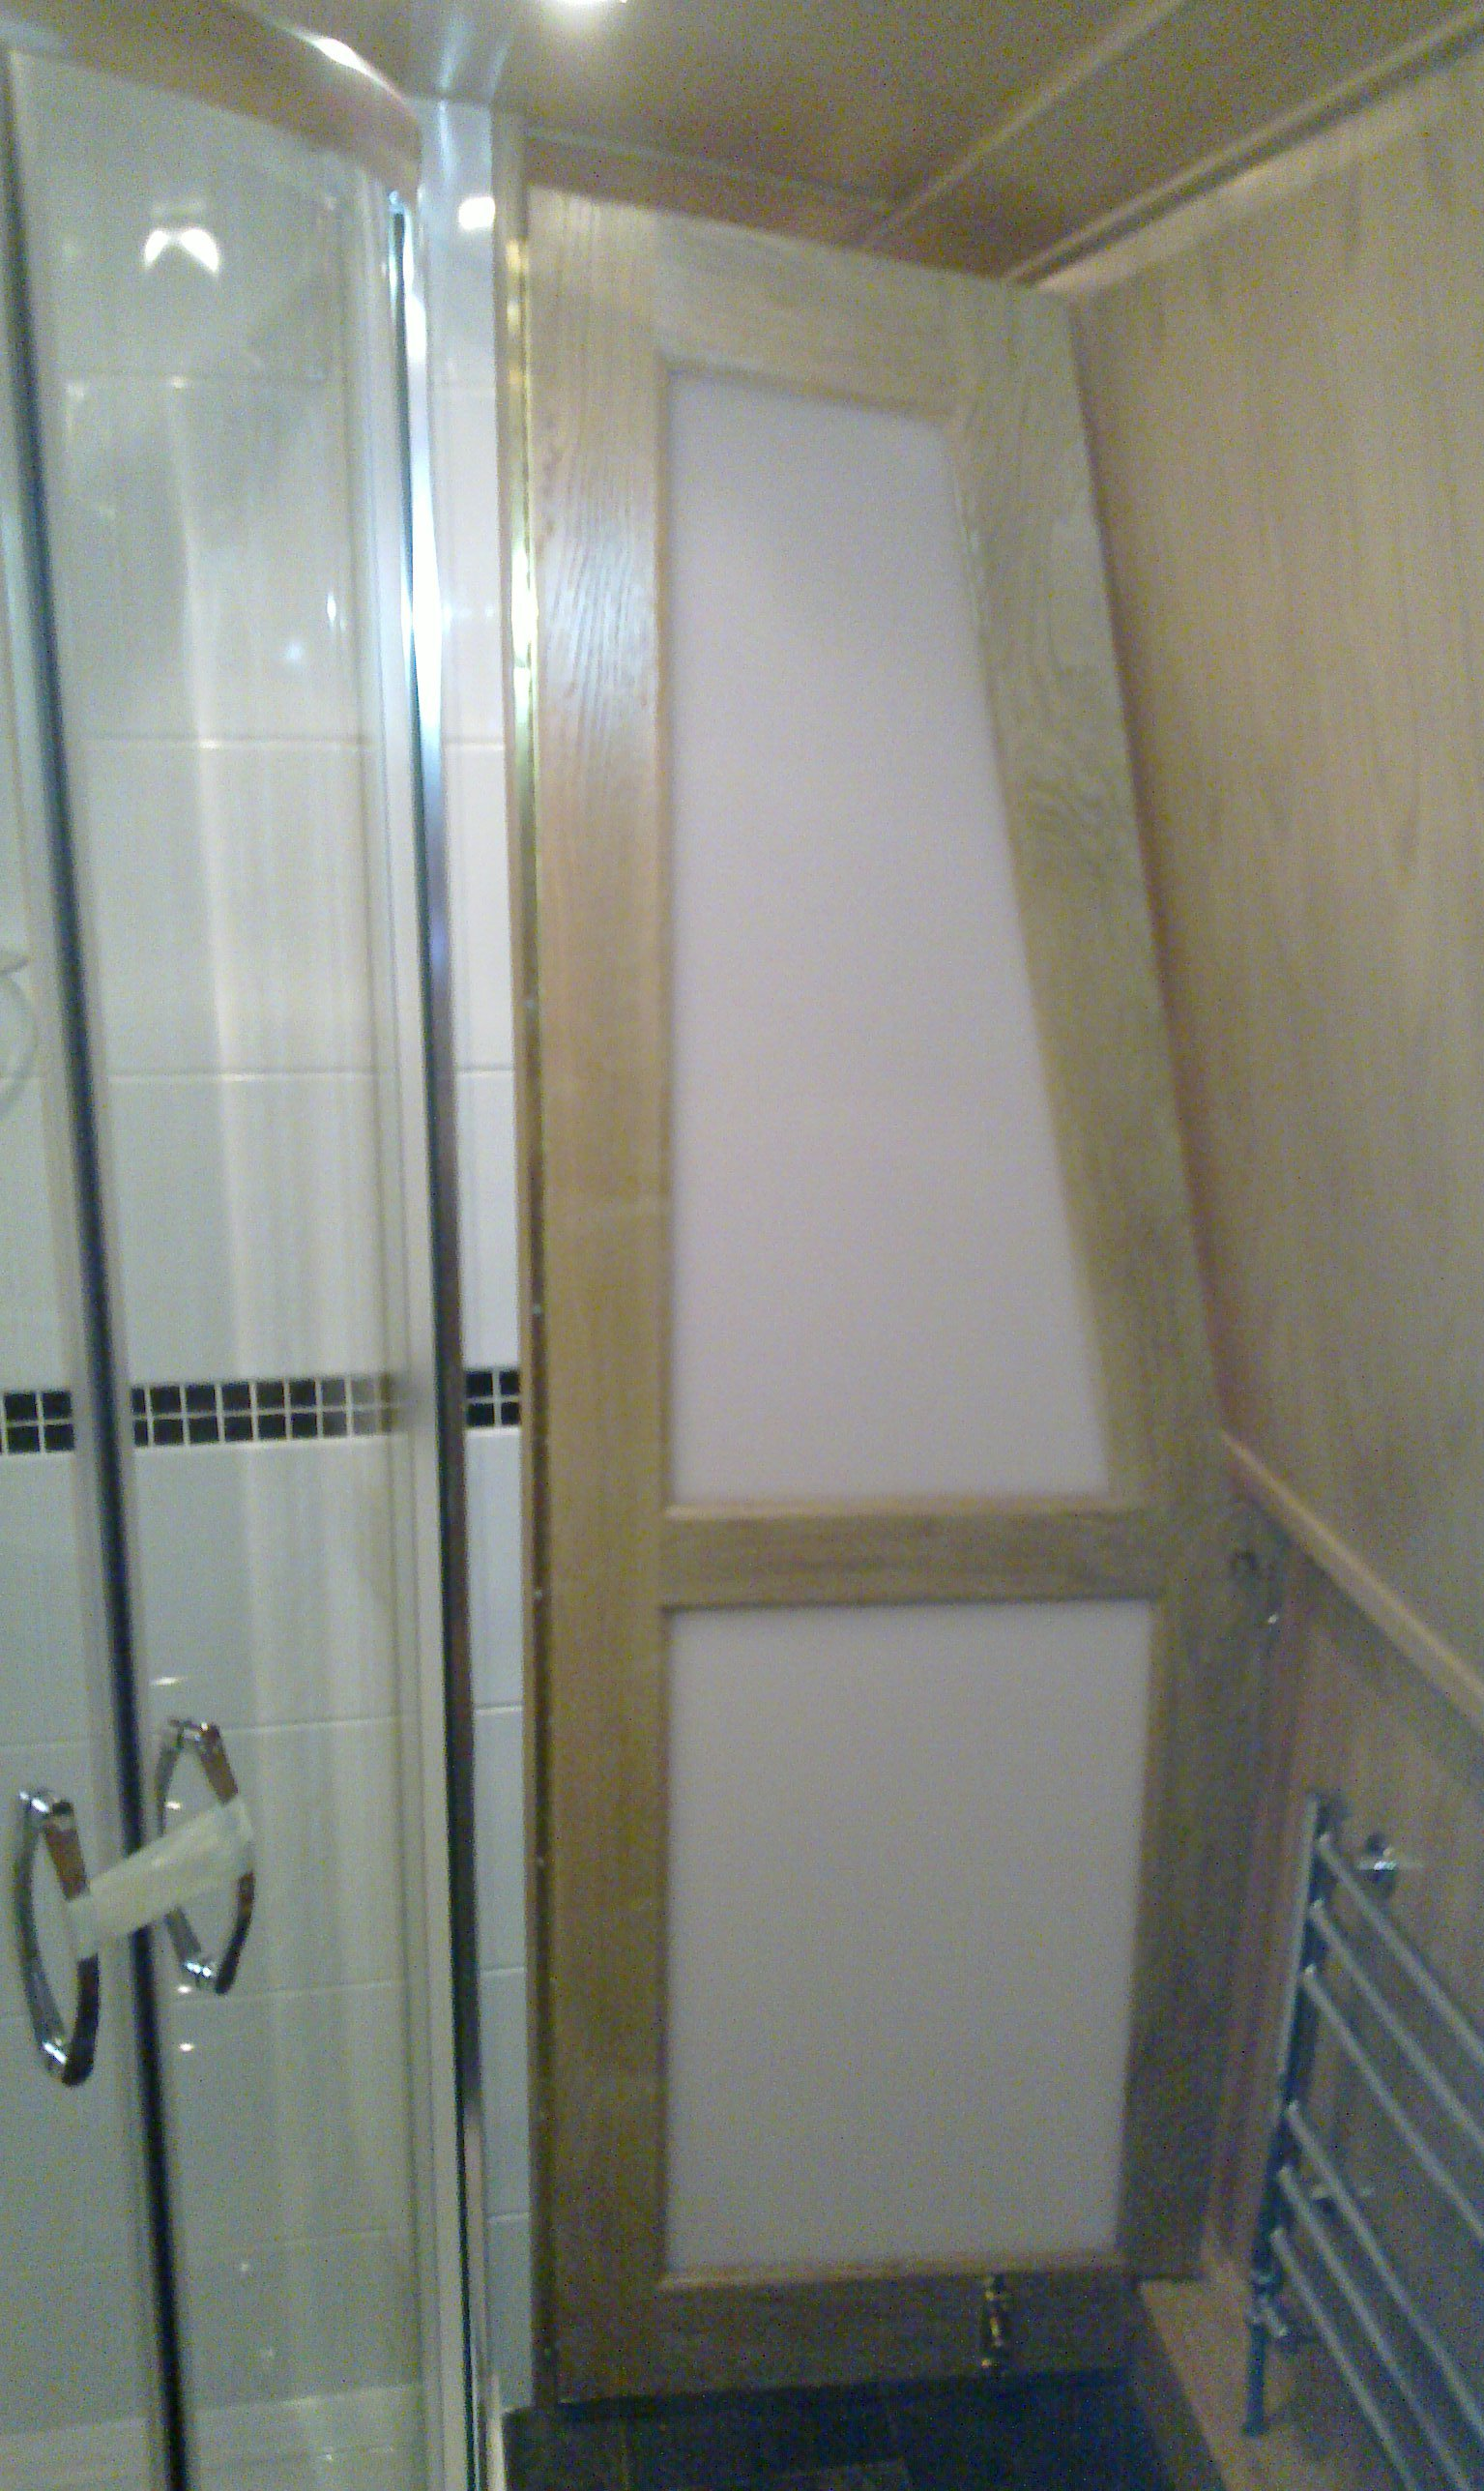 BATHROOM SHAPED OPAQUE DOOR - OAK.jpg